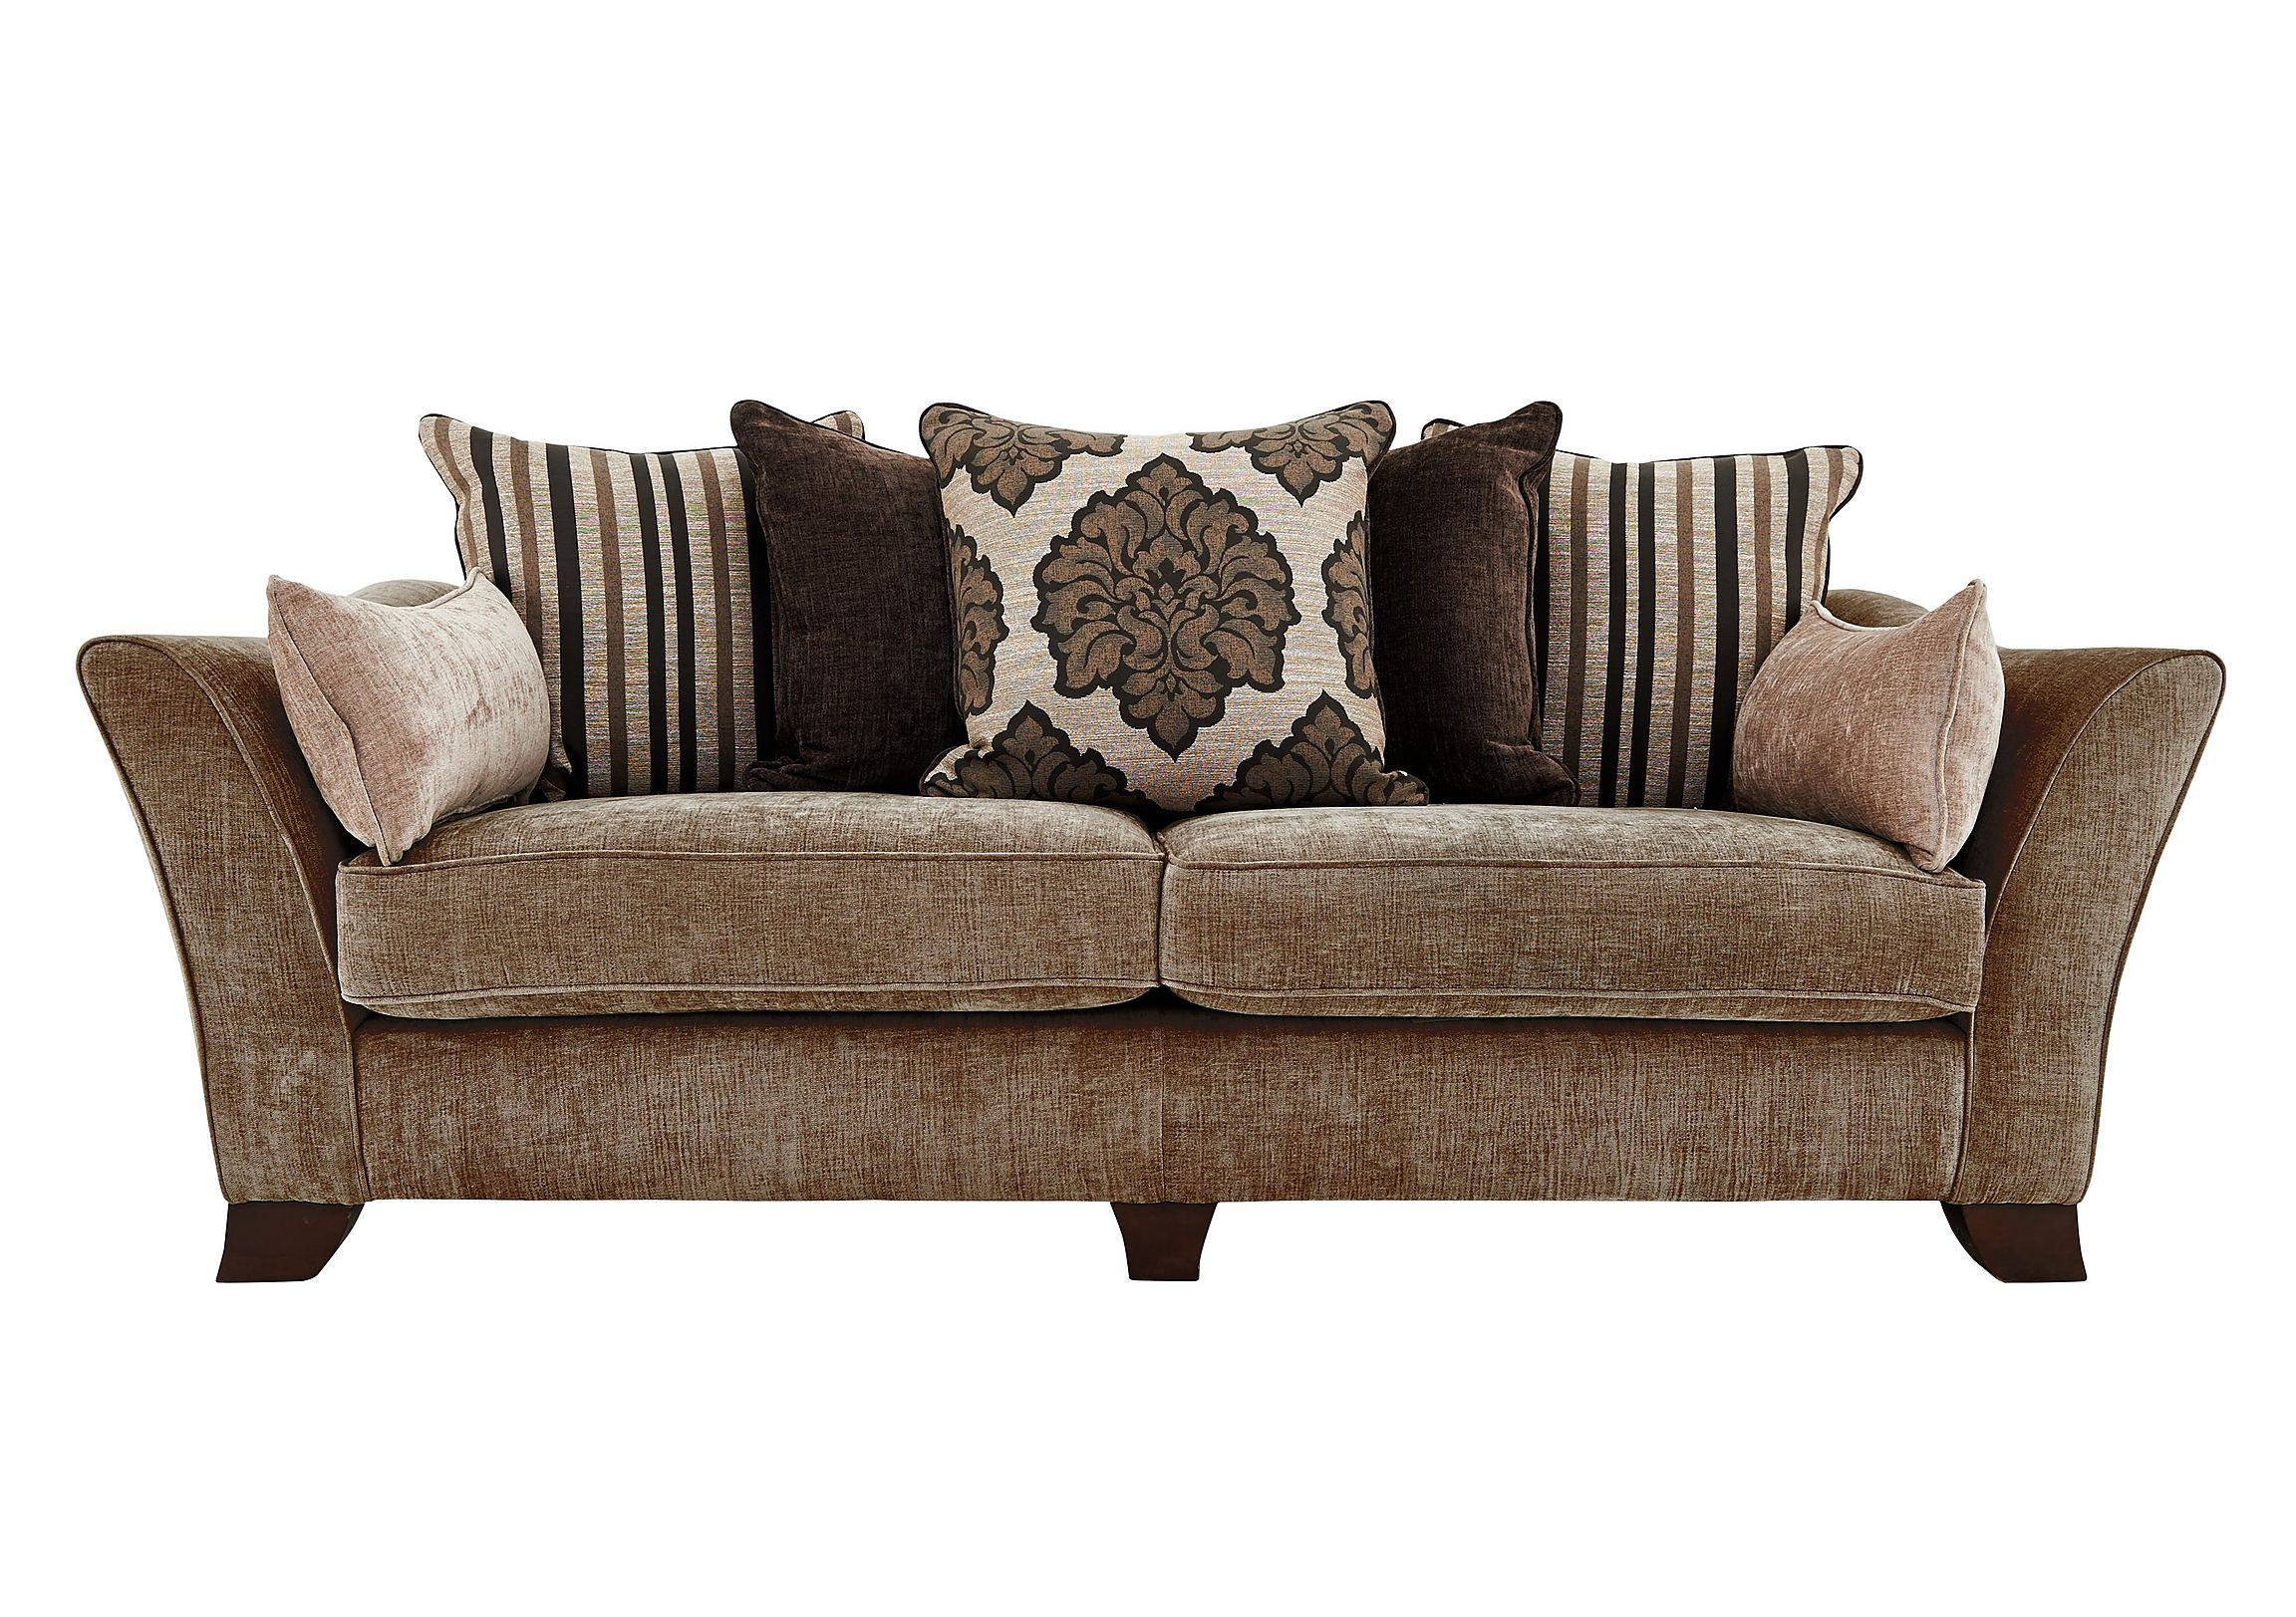 fortably roomy with five scatter back cushions Scatters in a